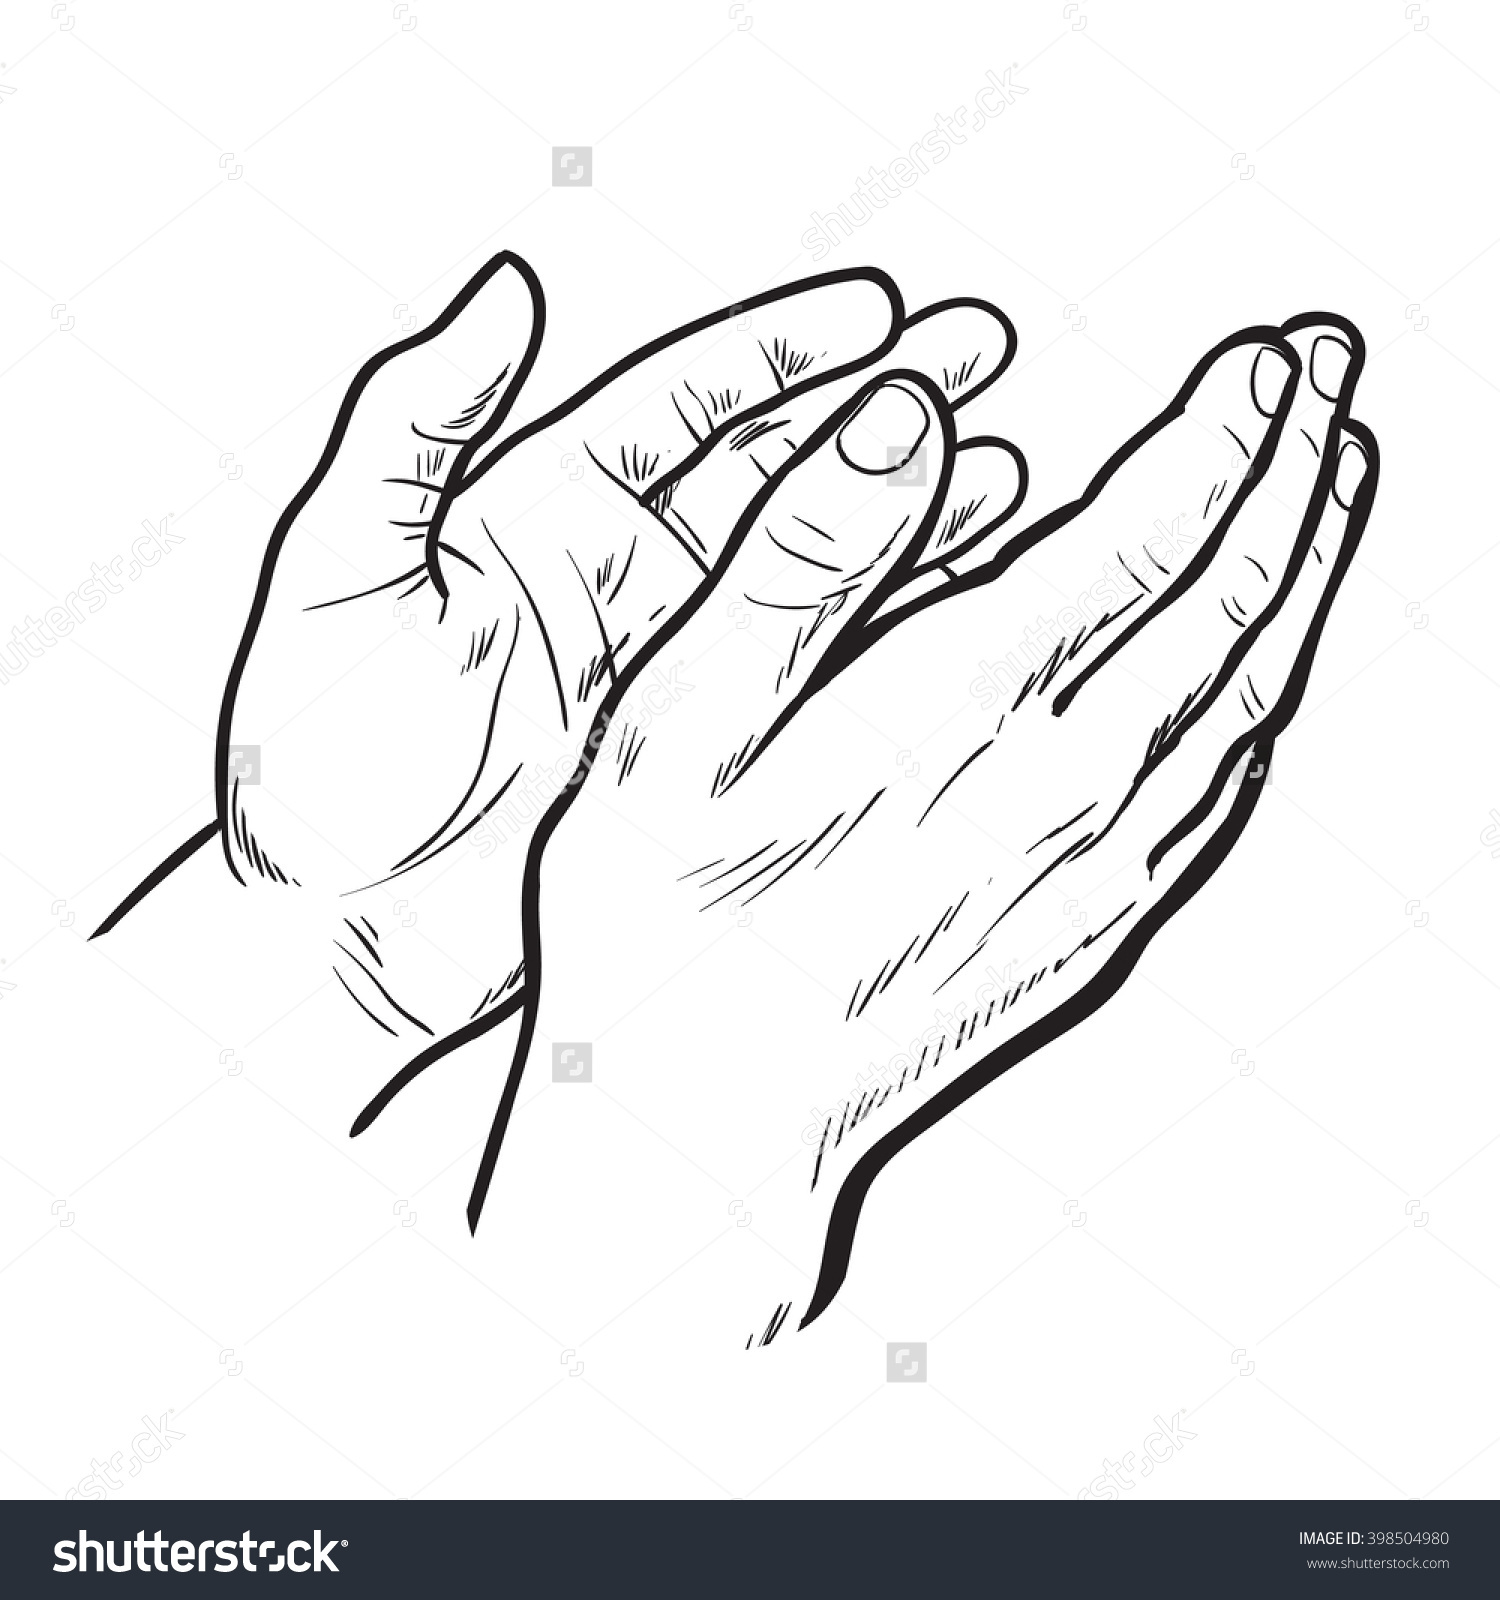 hight resolution of 1500x1600 hands clap vector hand drawn circuit stock symbol of applause